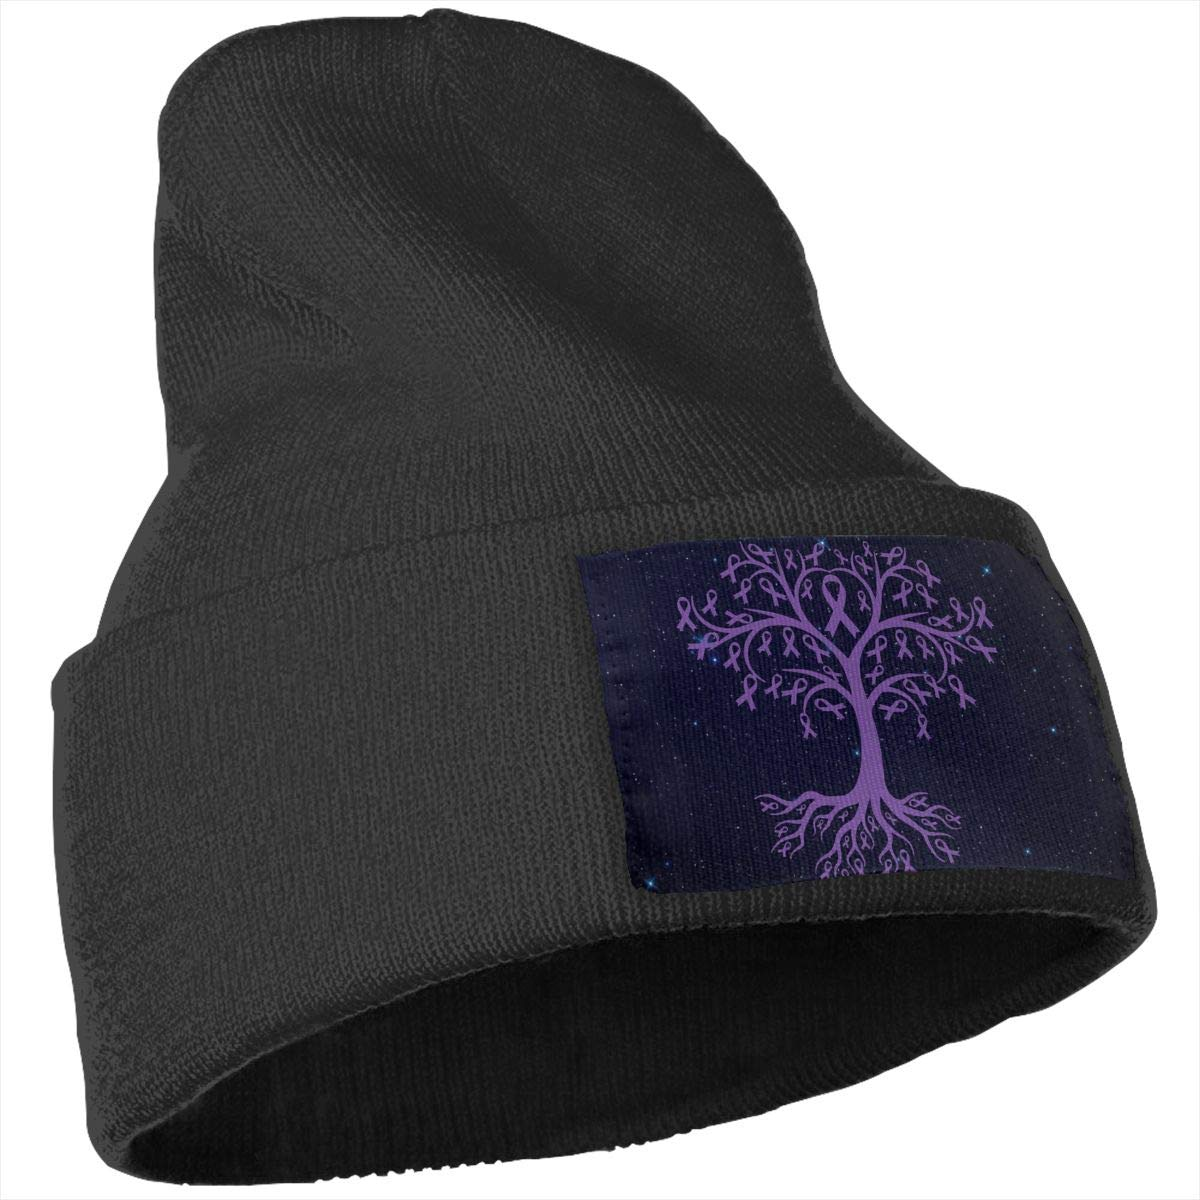 Stretchy /& Soft Winter Ski Skull Caps Leiomyosarcoma Cancer Awareness Tree Roots Women Men Solid Color Knit Beanie Hat